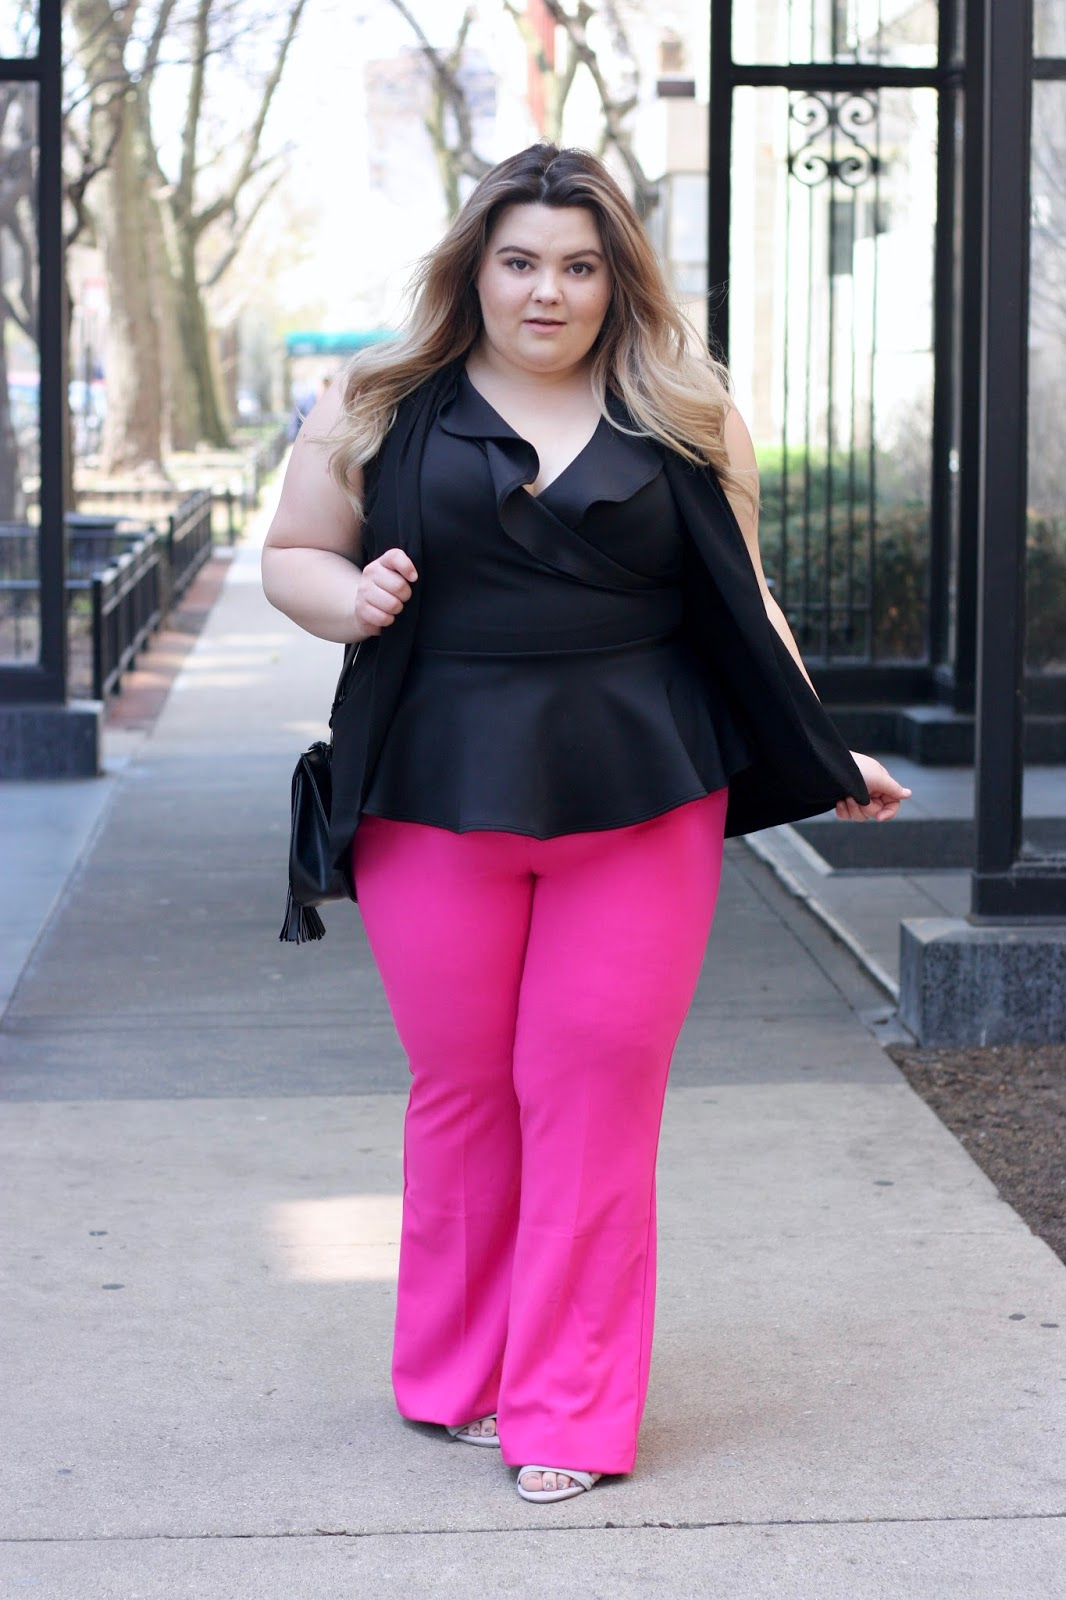 Victoria Beckham for Target, Finn Ruffle Trim Peplum Top Fashion to Figure, Women's Plus Fuchsia Twill Flared Trouser - Victoria Beckham for Target, blogger review, Natalie Craig, Natalie in the city, plus size fashion, Victoria Beckham plus size, hot pink pants, pink trousers, plus size fashion for women, fashion forward plus size women, affordable plus size fashion, target plus size, dia & co, plus size styling, chicago blogger, chicago fashion and lifestyle, midwest blogger